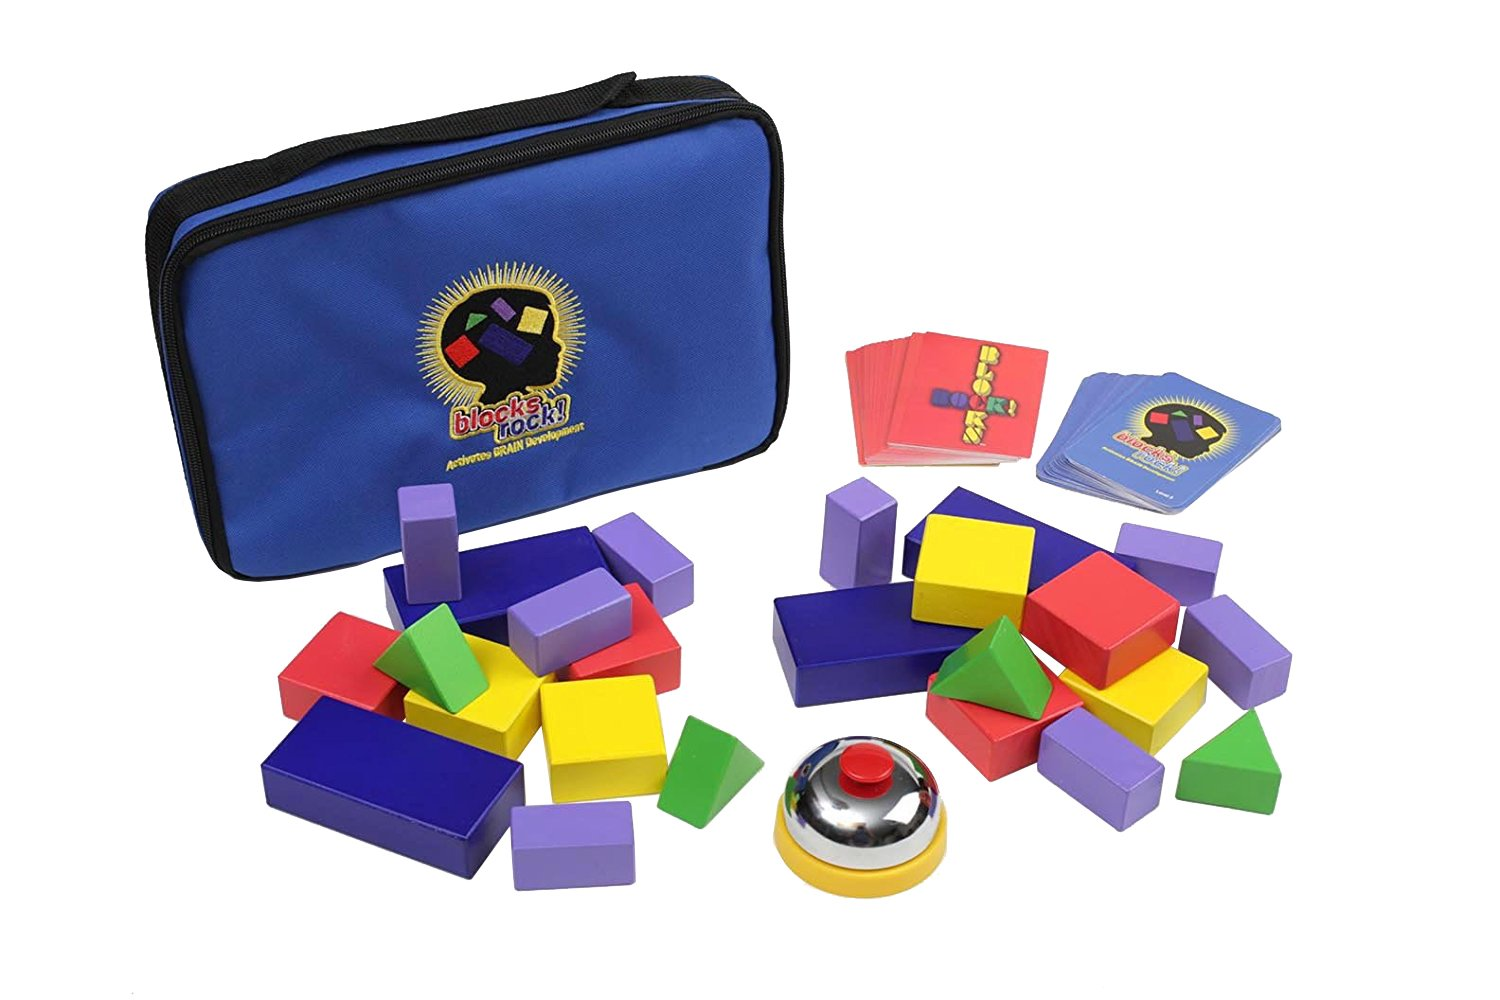 Blocks Rock A STEM Toy and Educational Game for Competitive Structured Block Play Ages 4